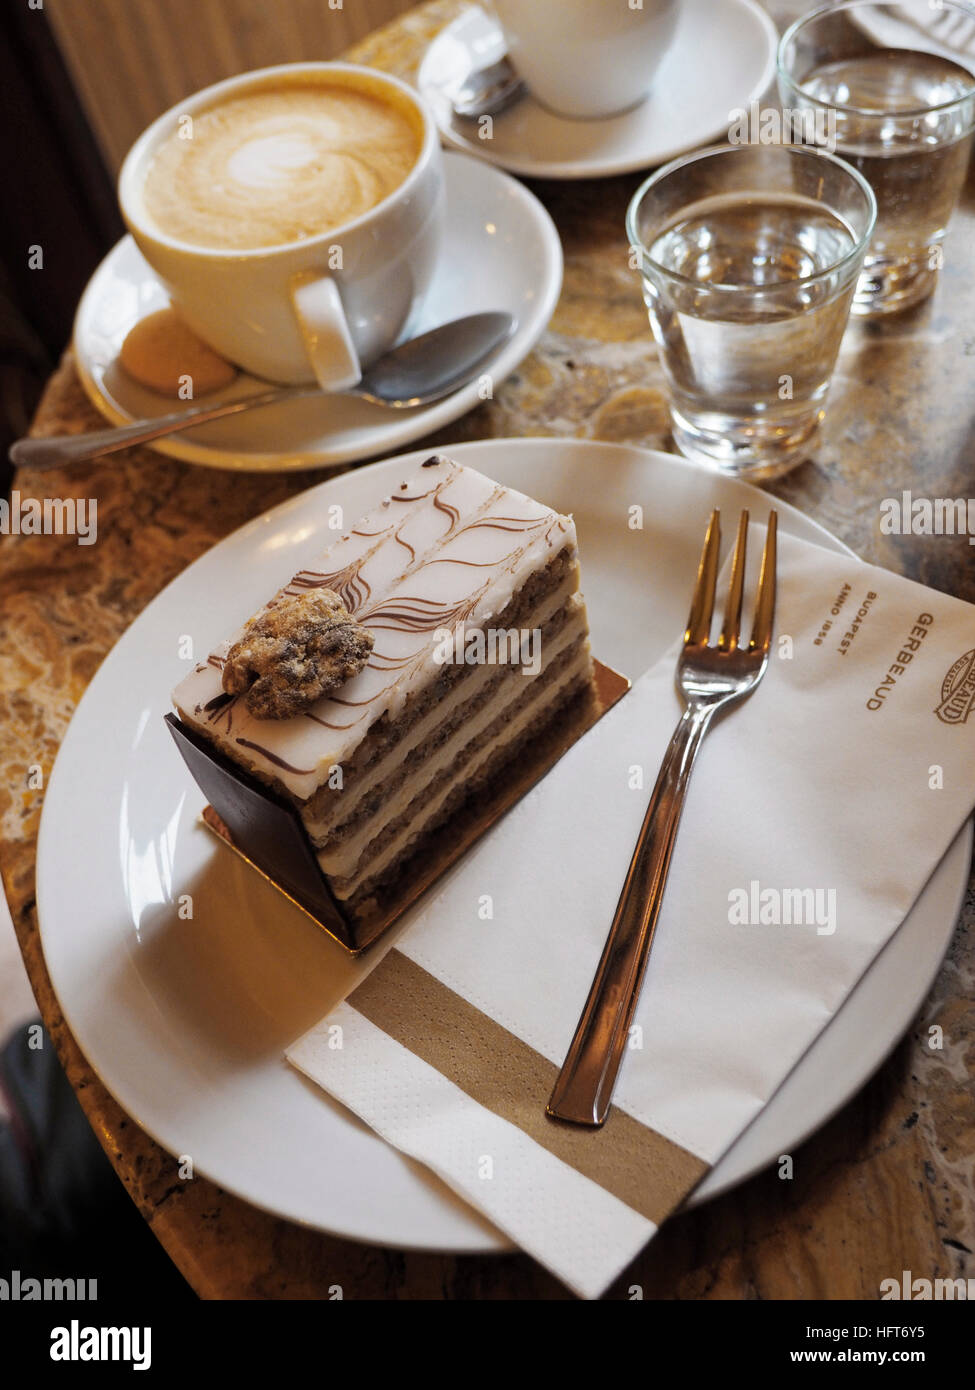 Esterhazy torte cake and cappuccino at Gerbeaud kavehaz in Budapest, Hungary. - Stock Image